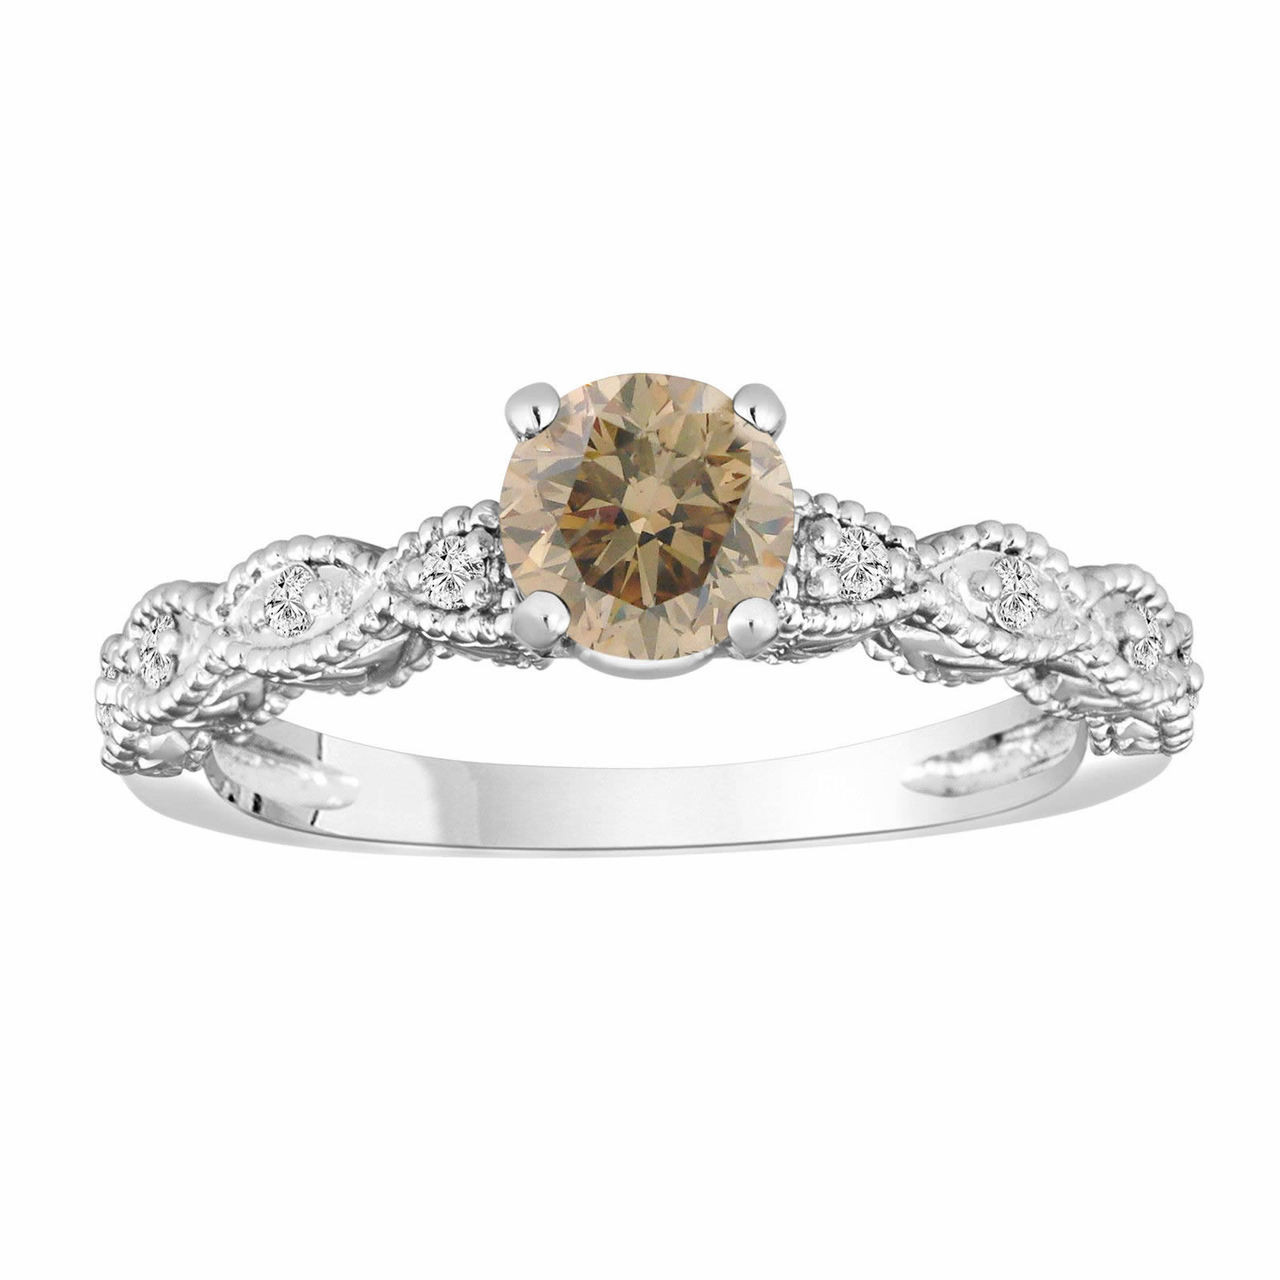 Champagne Diamond Engagement Ring Reviews